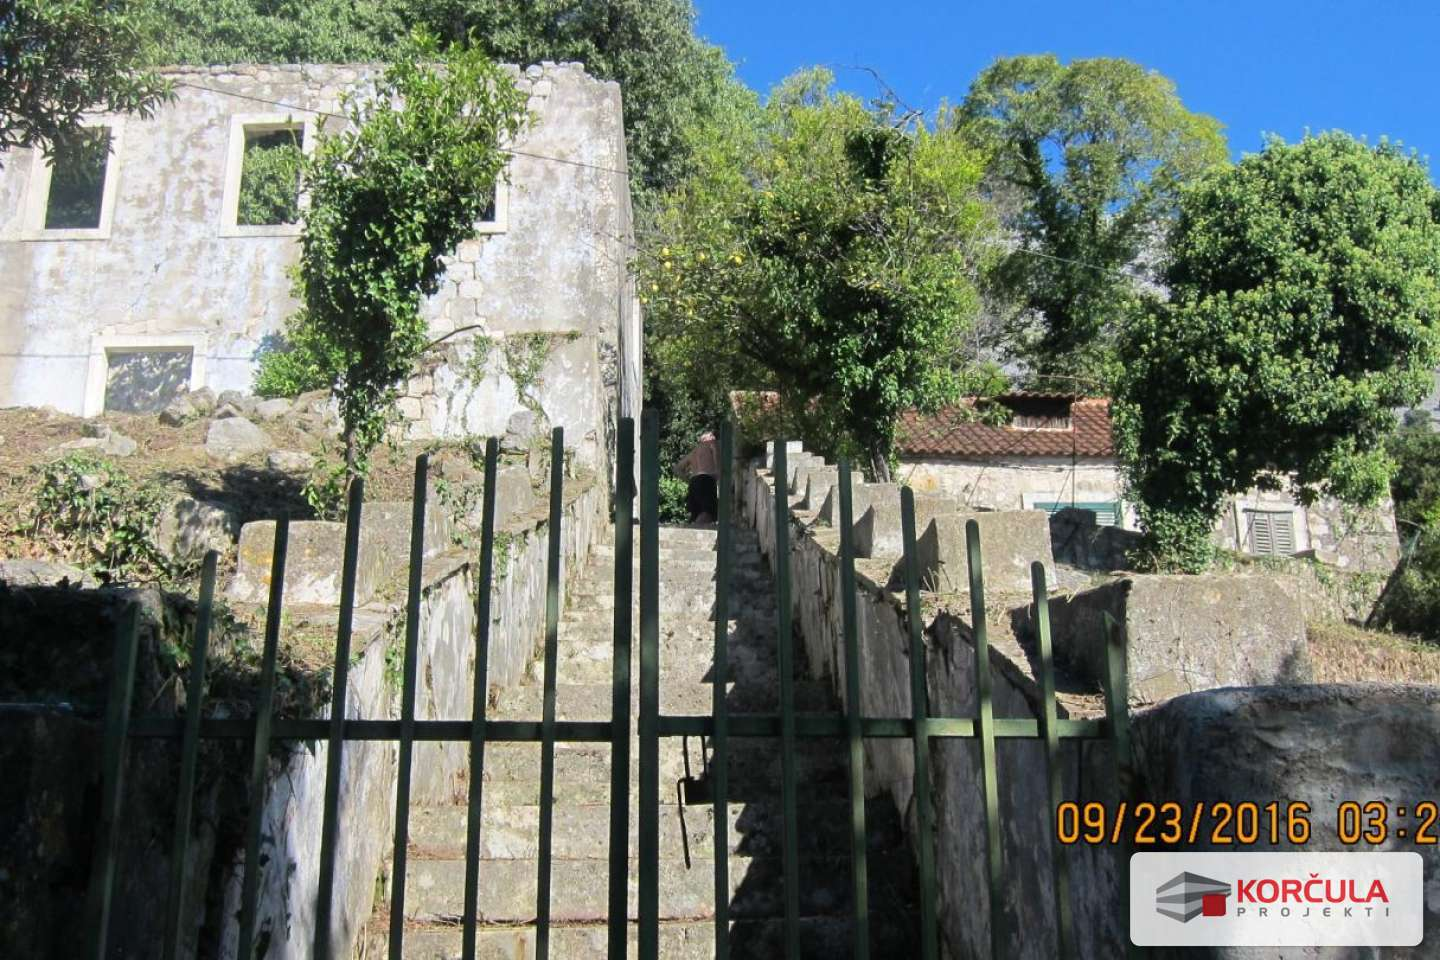 Old spacious property above Orebić - Renovation project with a reconstruction permit